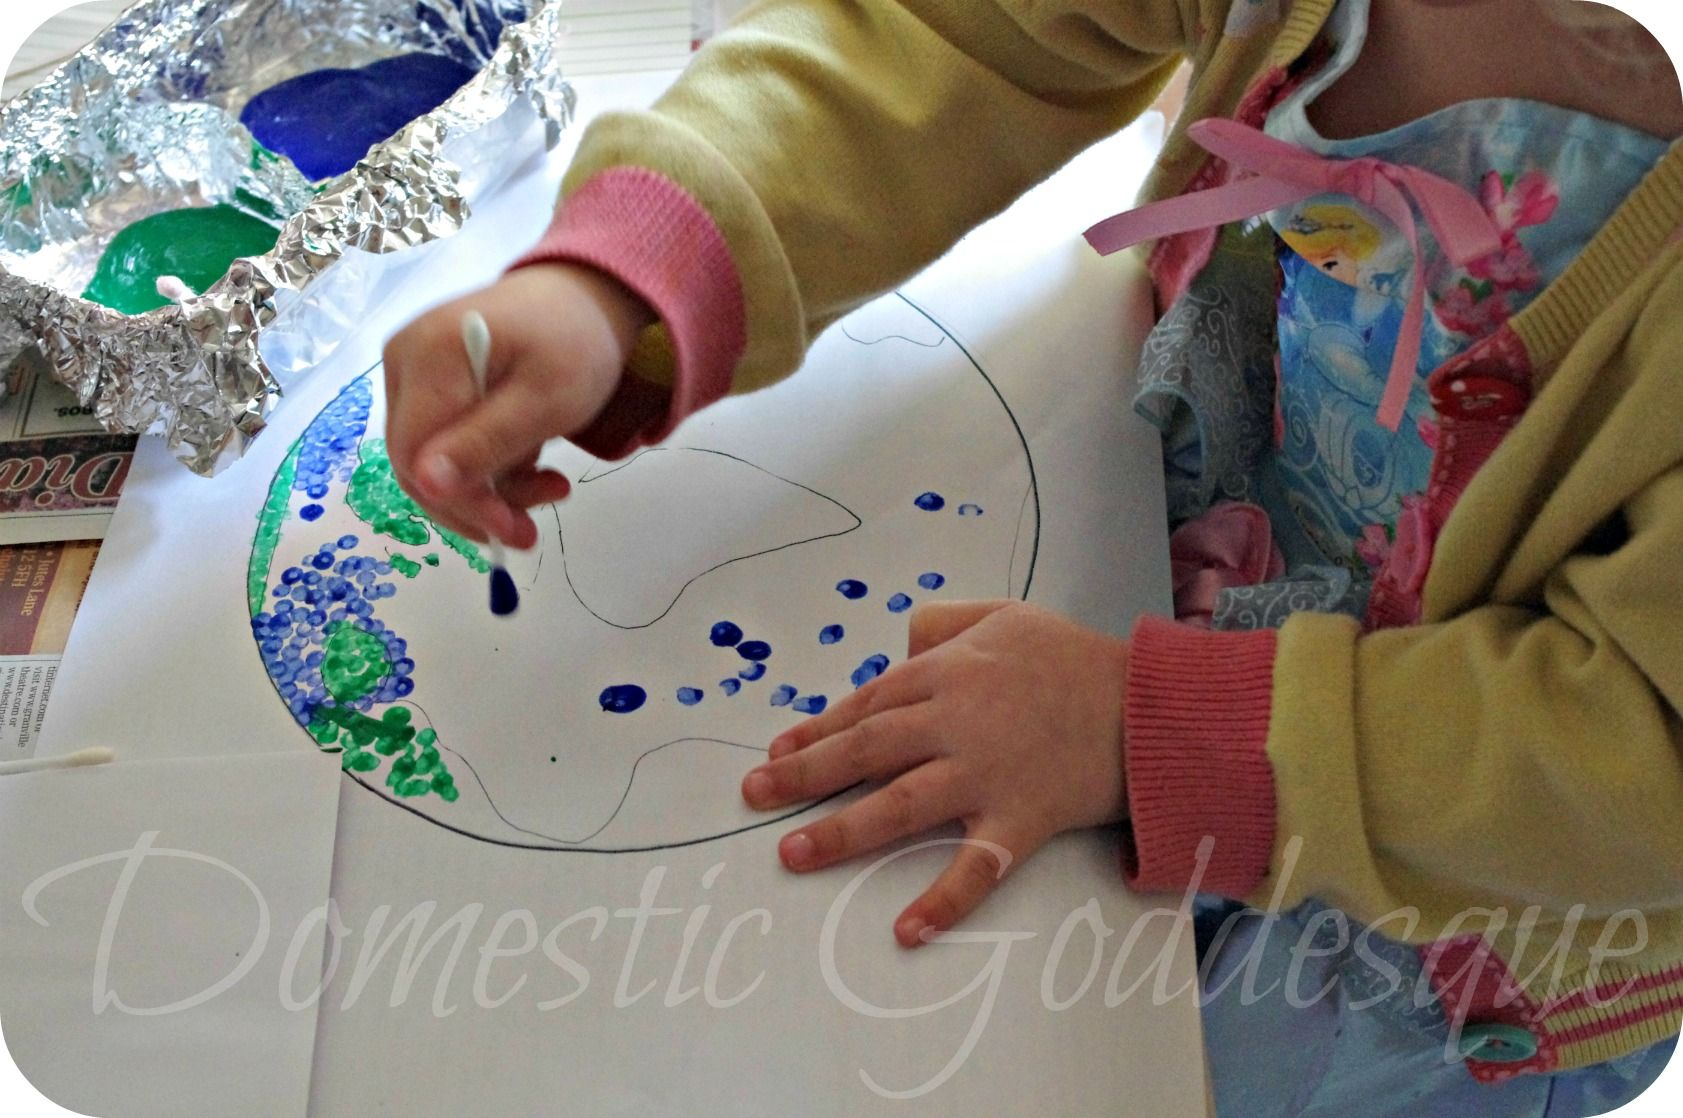 reduce reuse recycle earth day cotton bud painting domestic